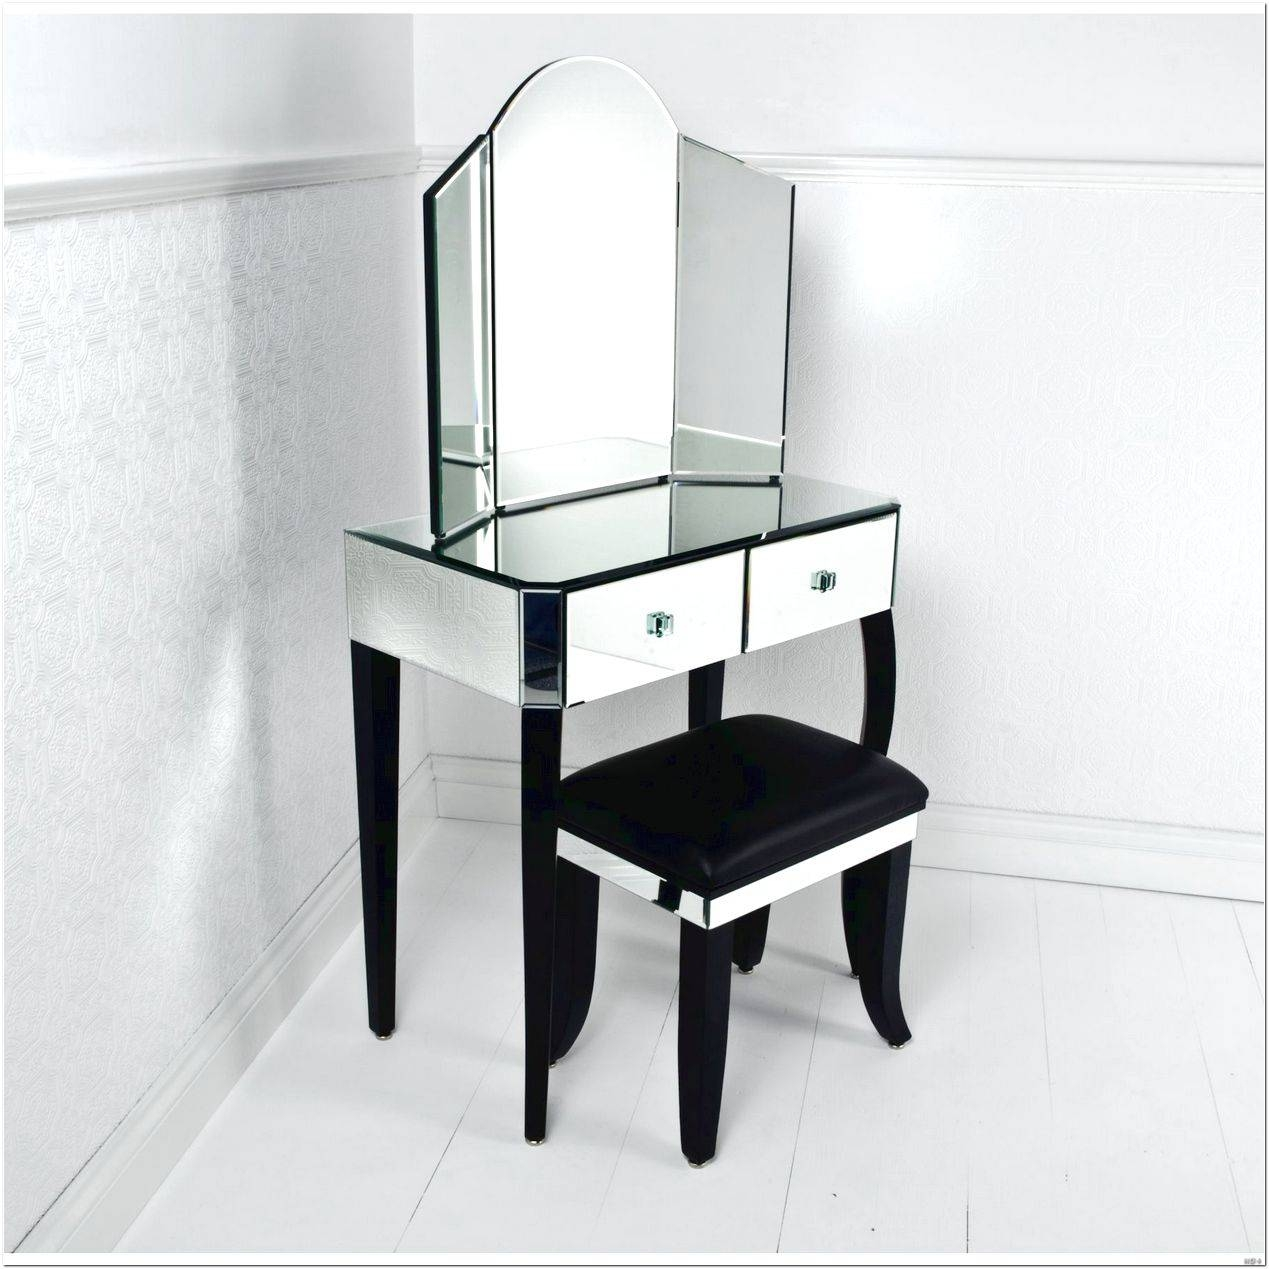 Dressing Table Mirror And Stool Design Ideas - Interior Design For with regard to Small Table Mirrors (Image 6 of 25)